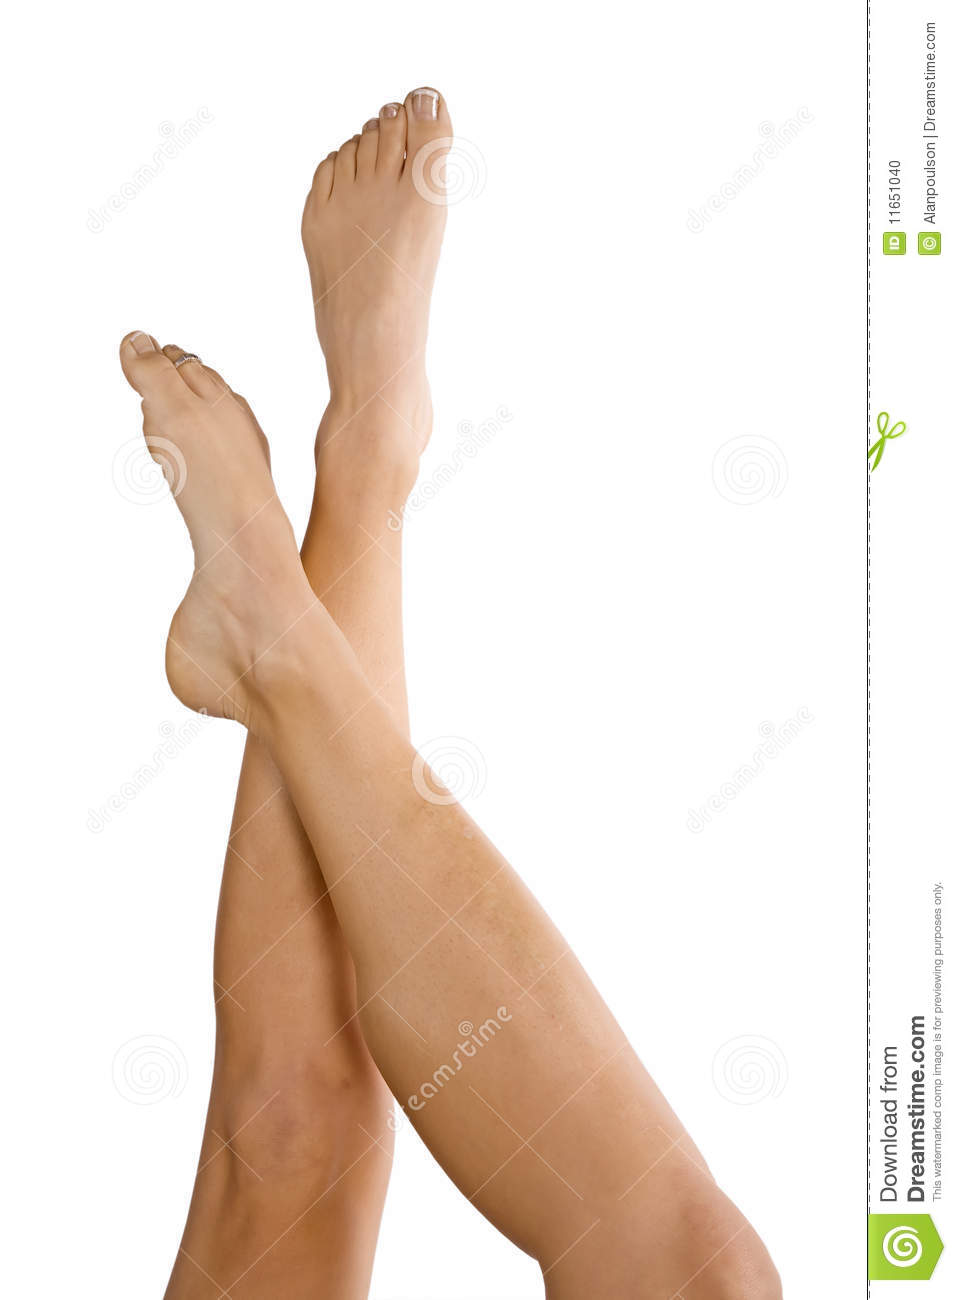 Consider, that Pointing toes fetish pictures right. good